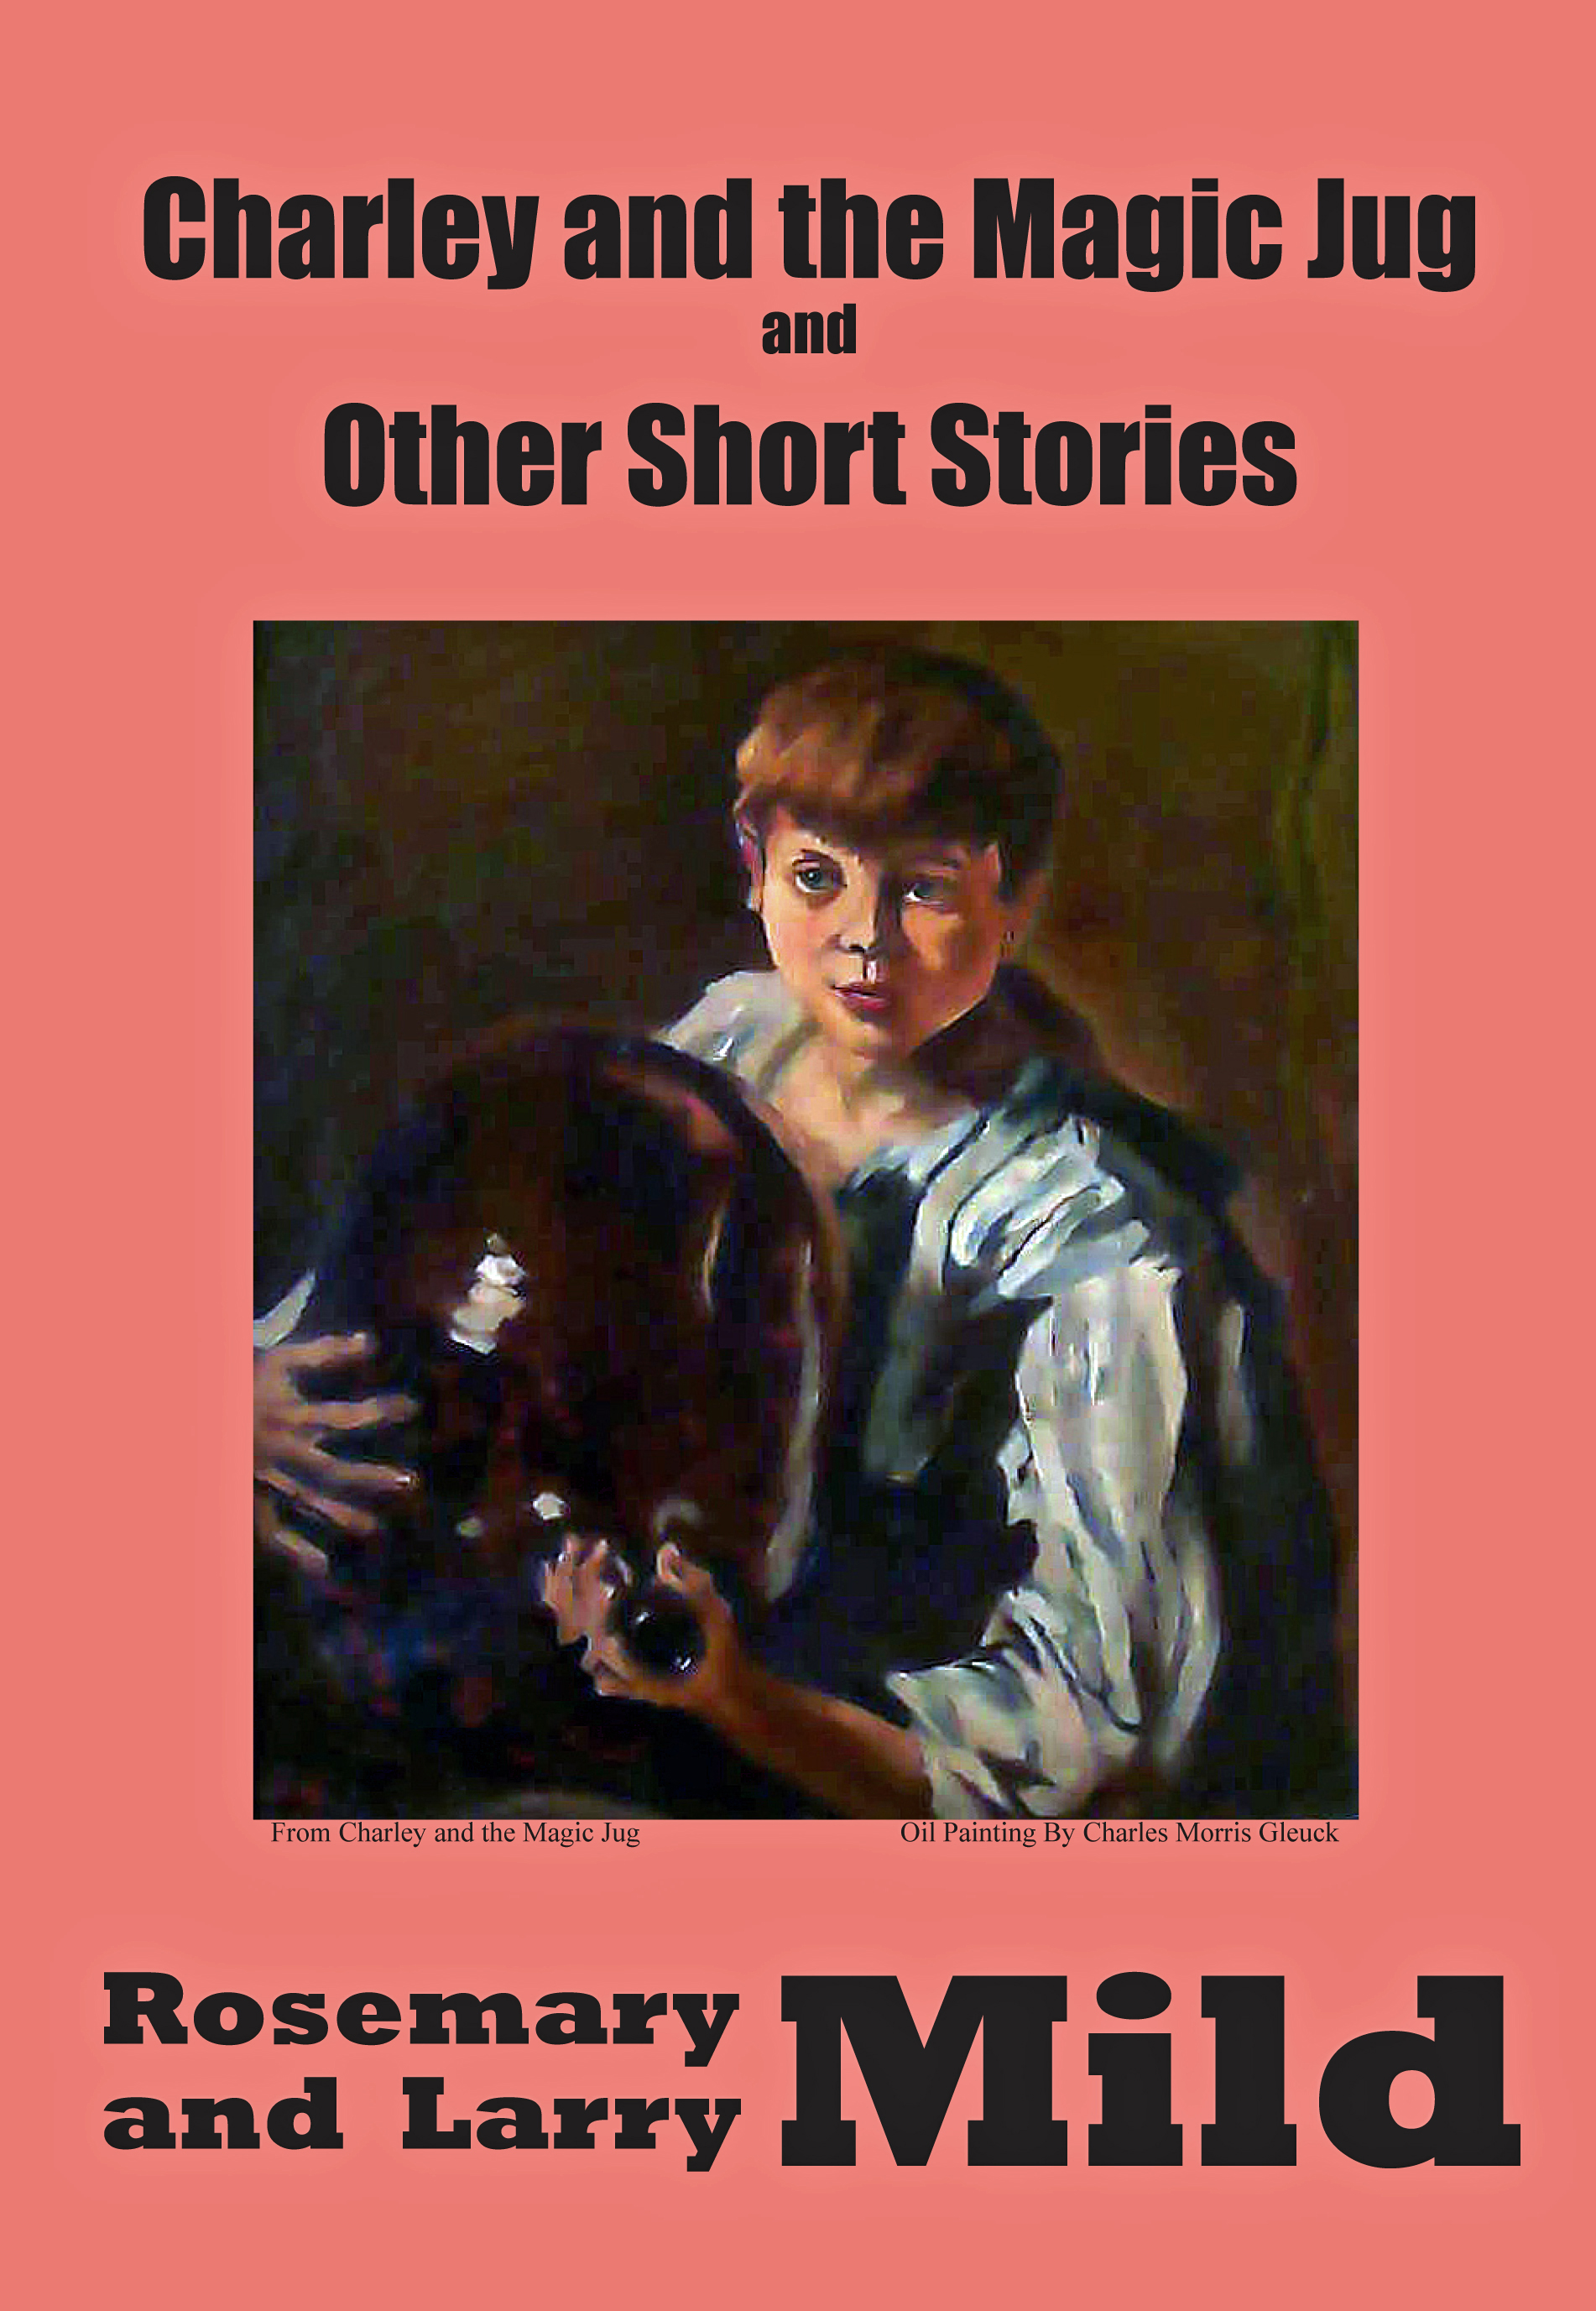 Charlie and the Magic Jug and Other Short Stories by Rosemary and Larry Mild